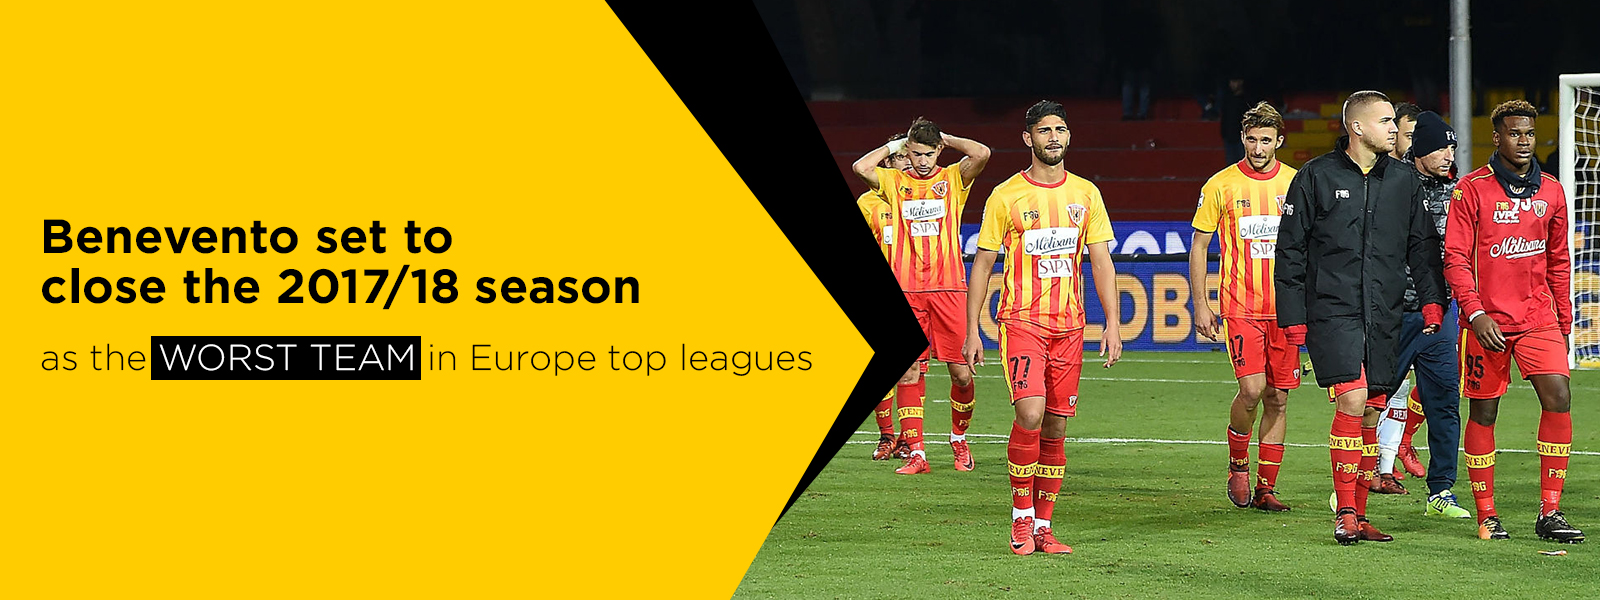 Benevento Calcio The Worst Team In Europe Top Leagues